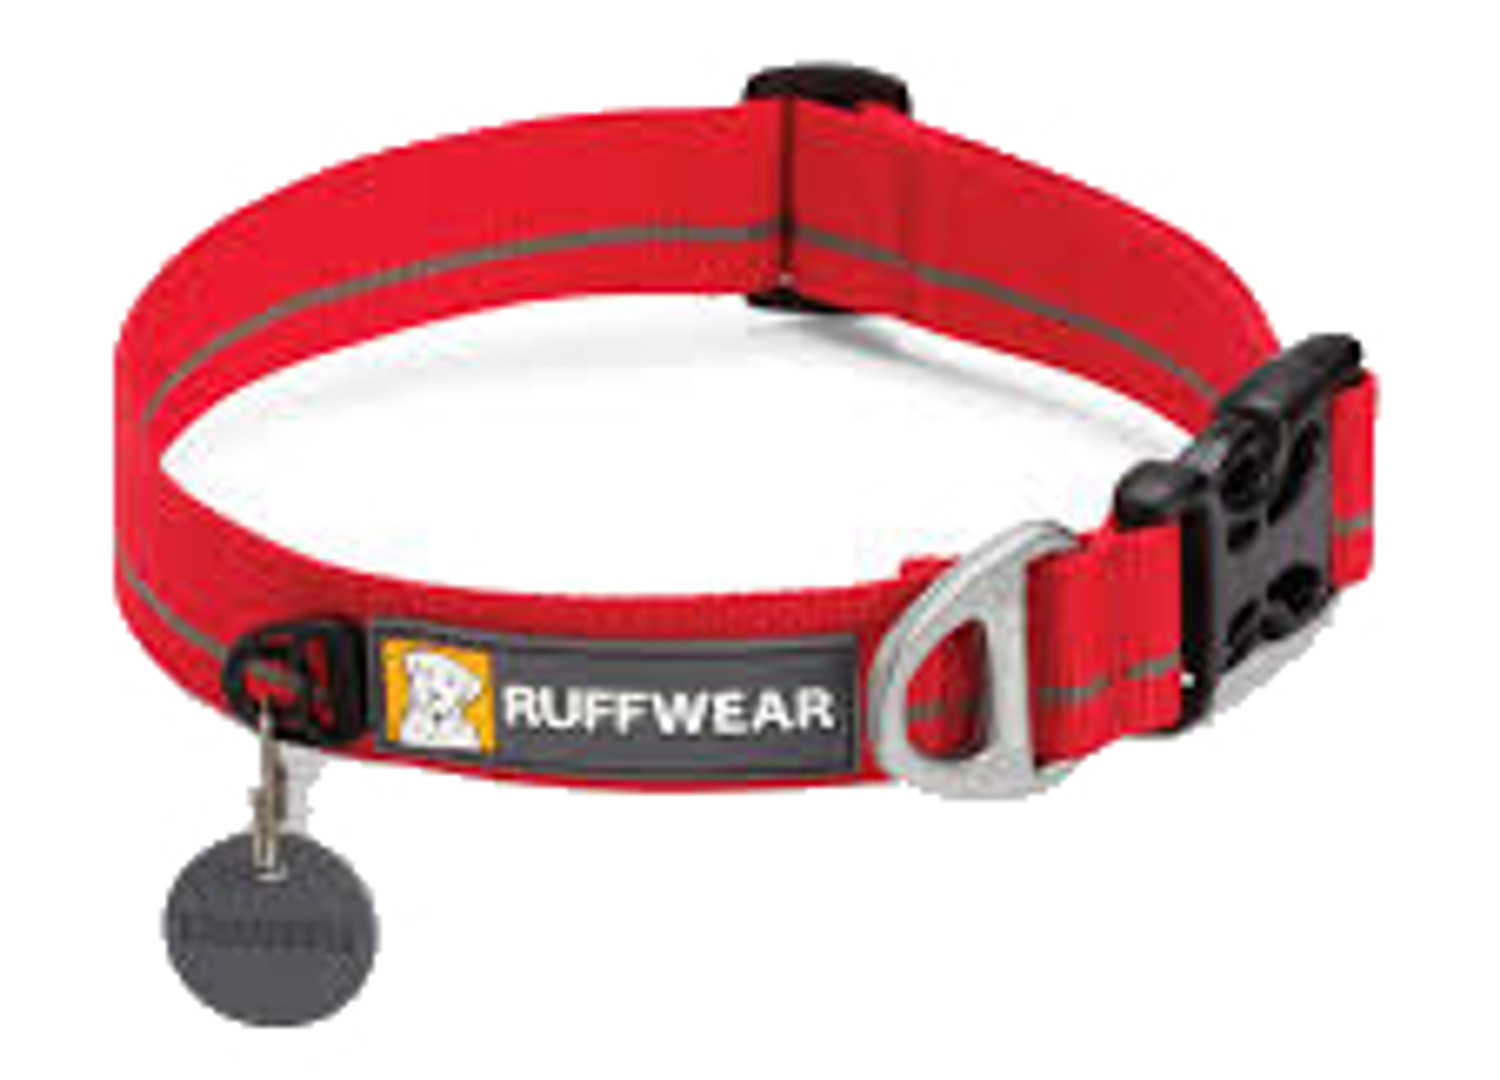 Ruffwear Dog Collar - Hoopie - Red Currant